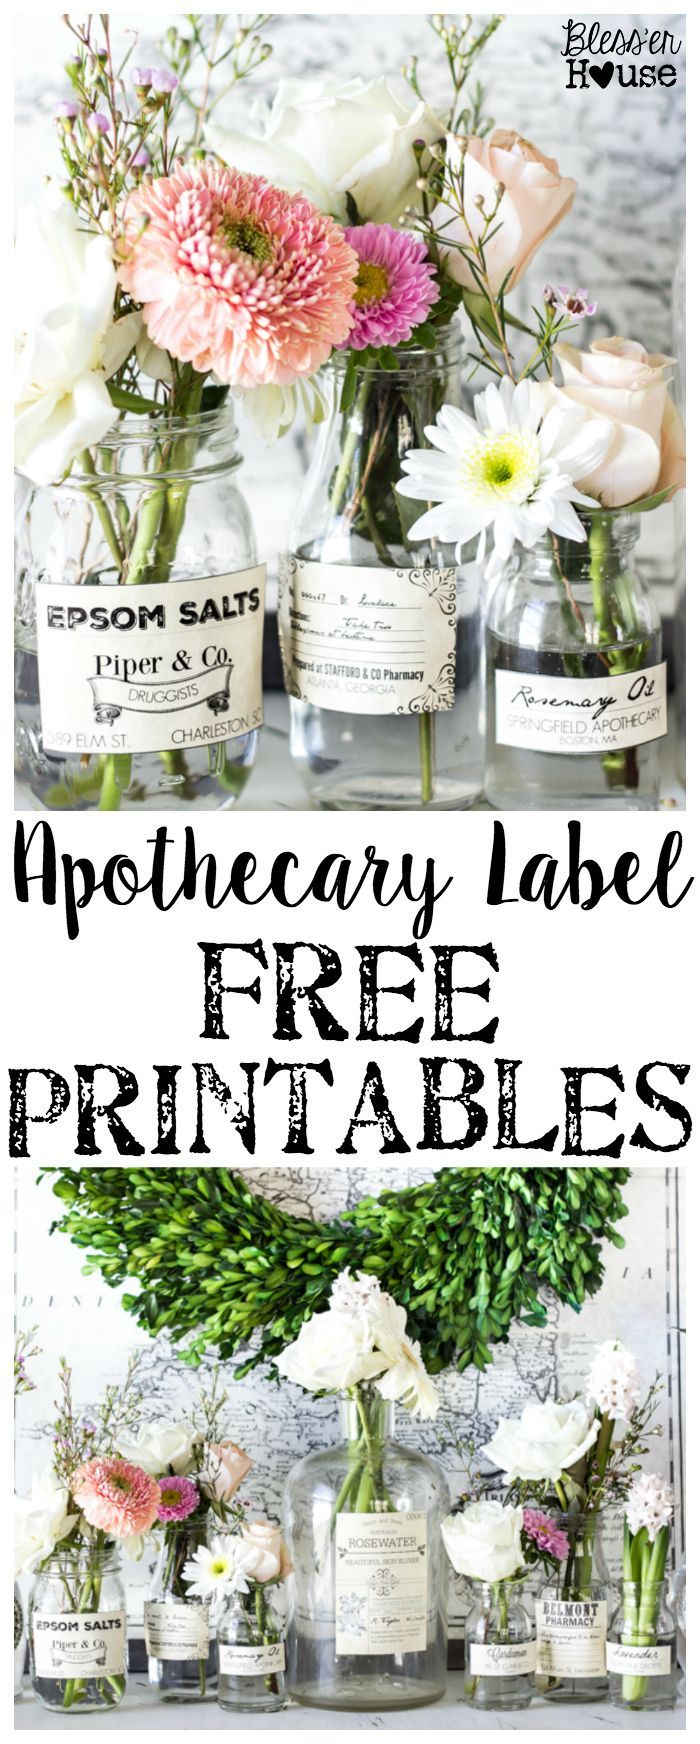 Spring Apothecary Jar Labels Printable | blesserhouse.com - These are so cute! Stick them on any glass bottles and they're instant vintage farmhouse decor! More